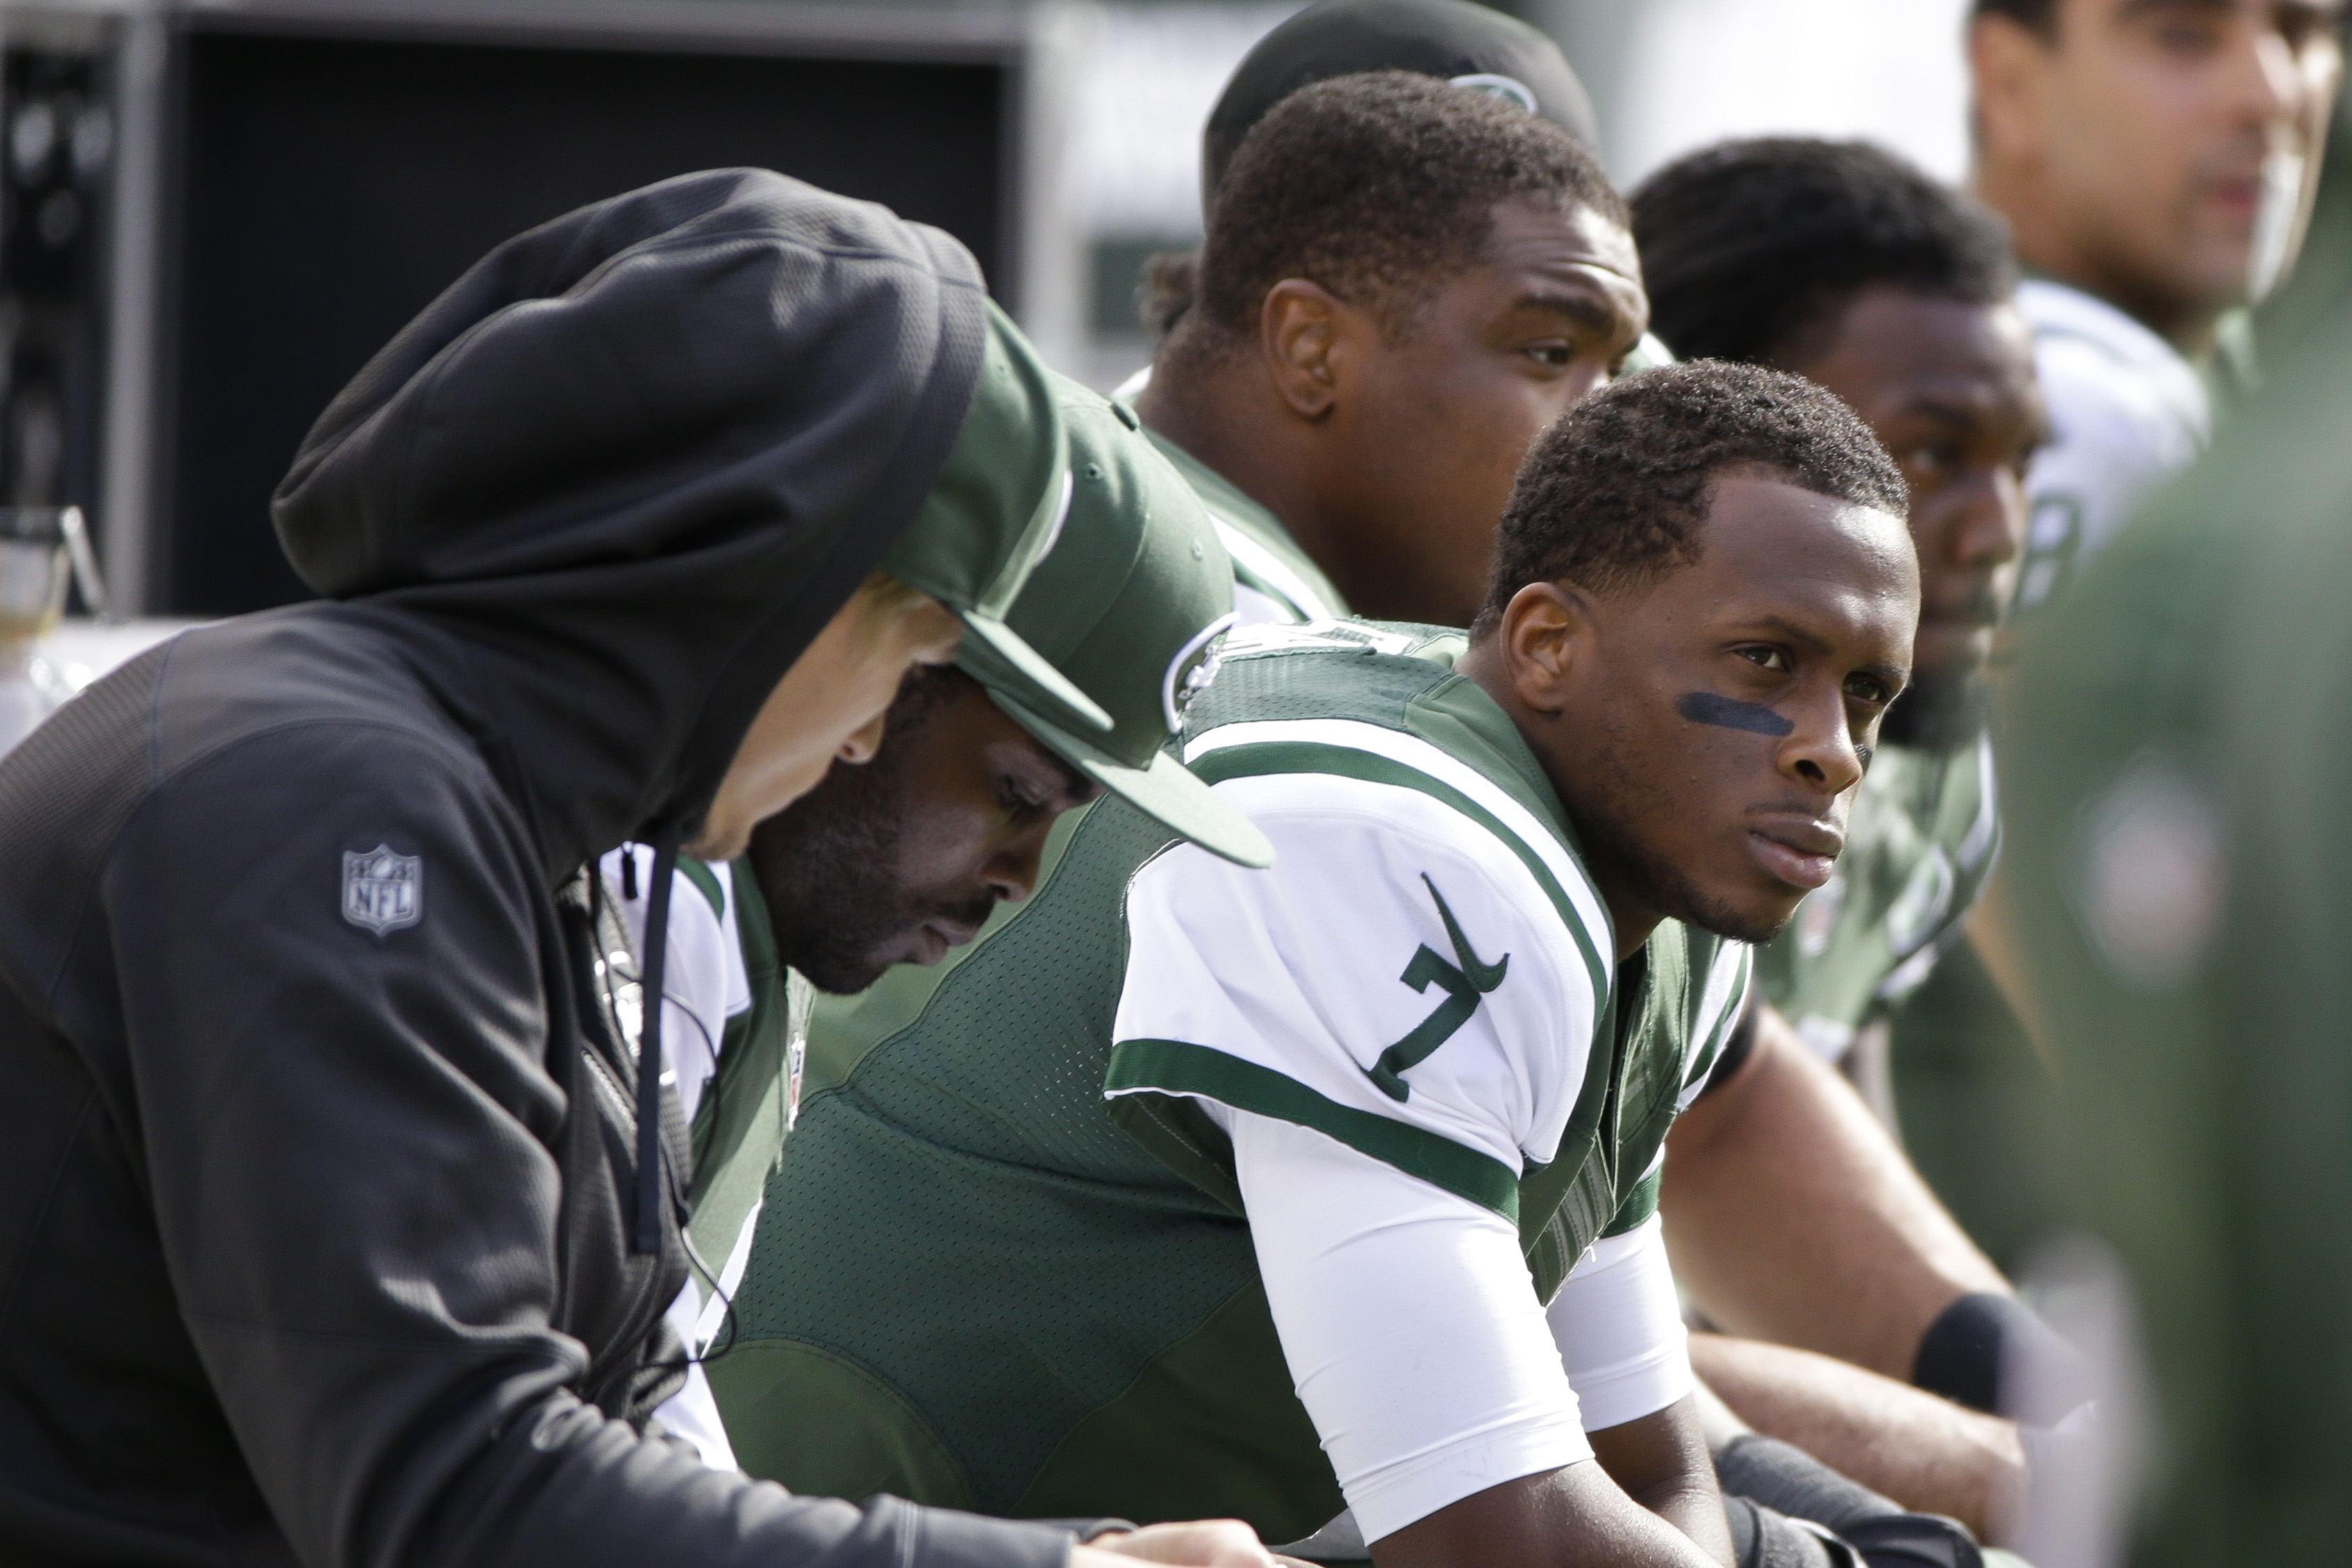 FILE - In this Oct. 26, 2014, file photo, New York Jets quarterback Geno Smith sits on the bench during the first half of an NFL football game against the Buffalo Bills in East Rutherford. Geno Smith's hopes for a breakout season with the New York Jets to